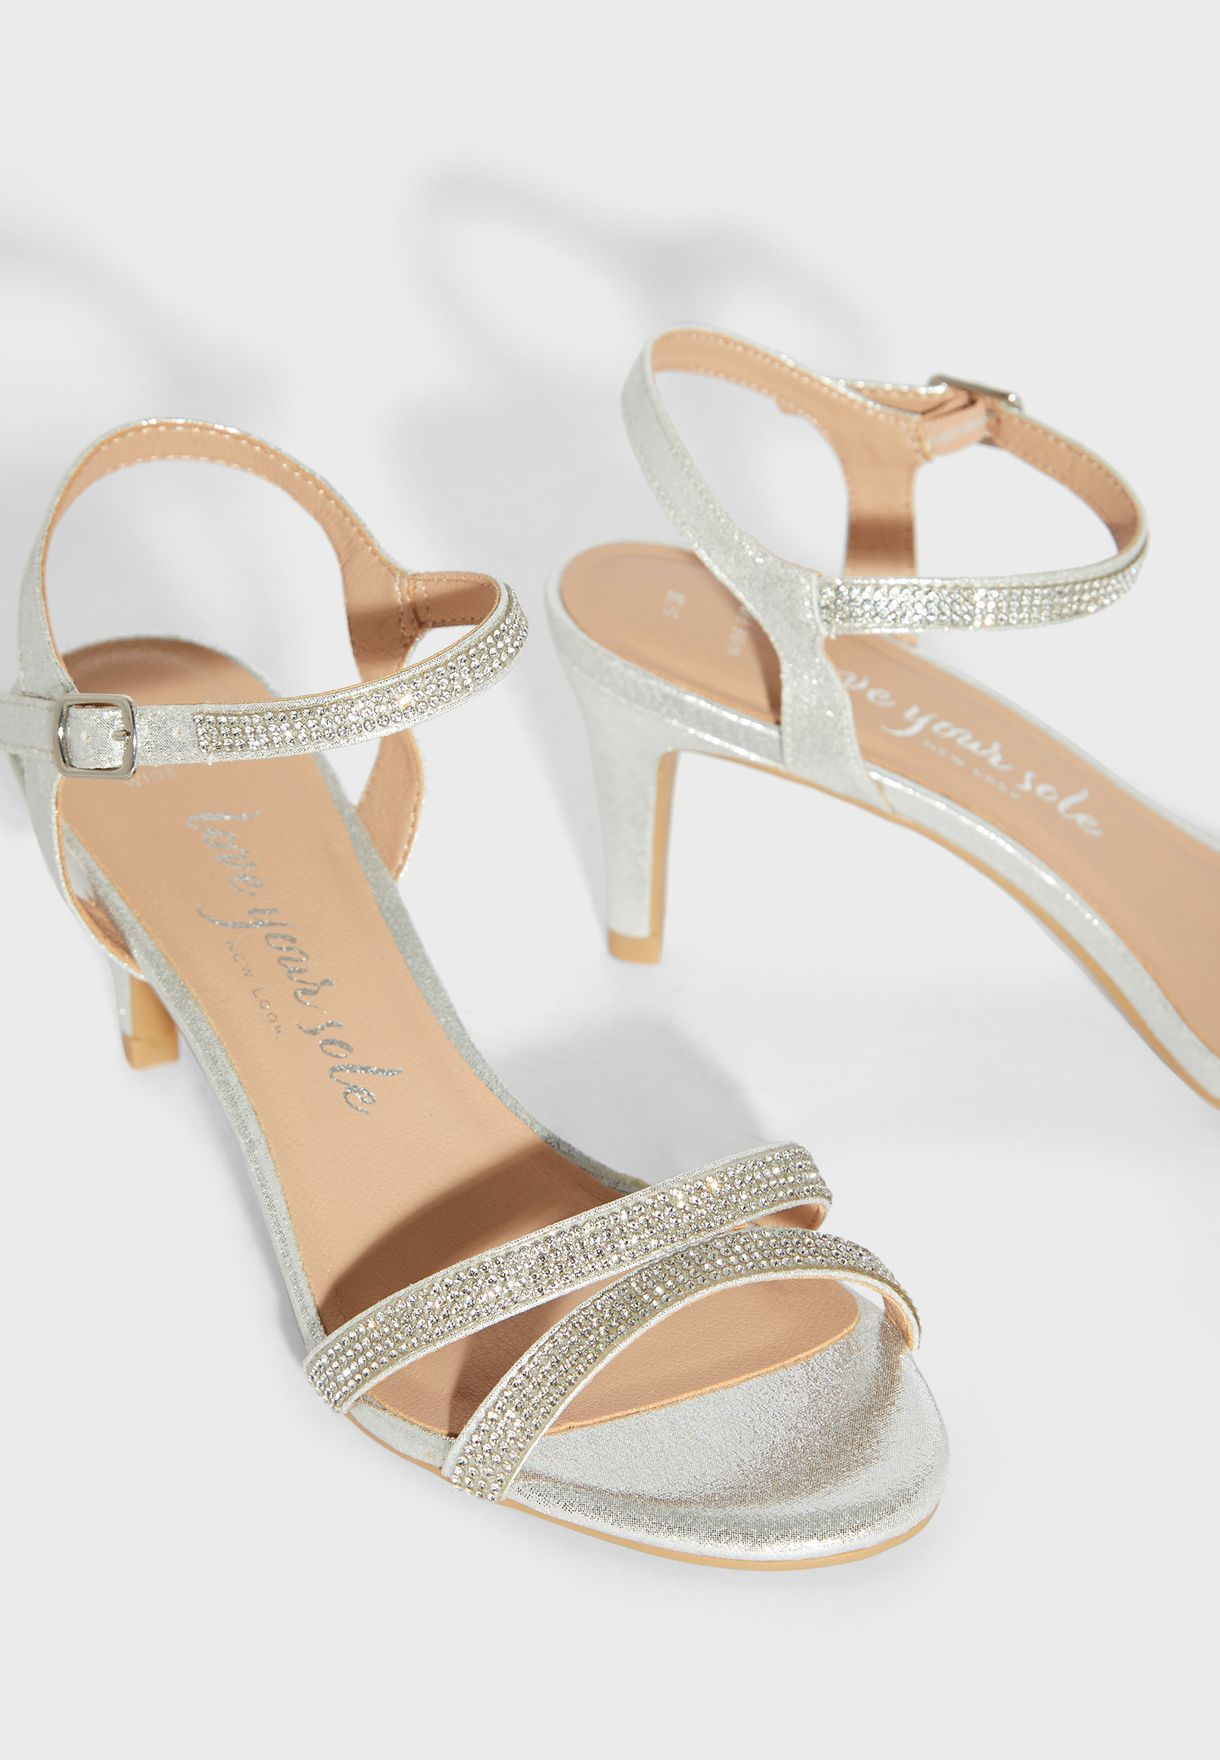 Wide Fit Taweety Ankle Strap Sandal